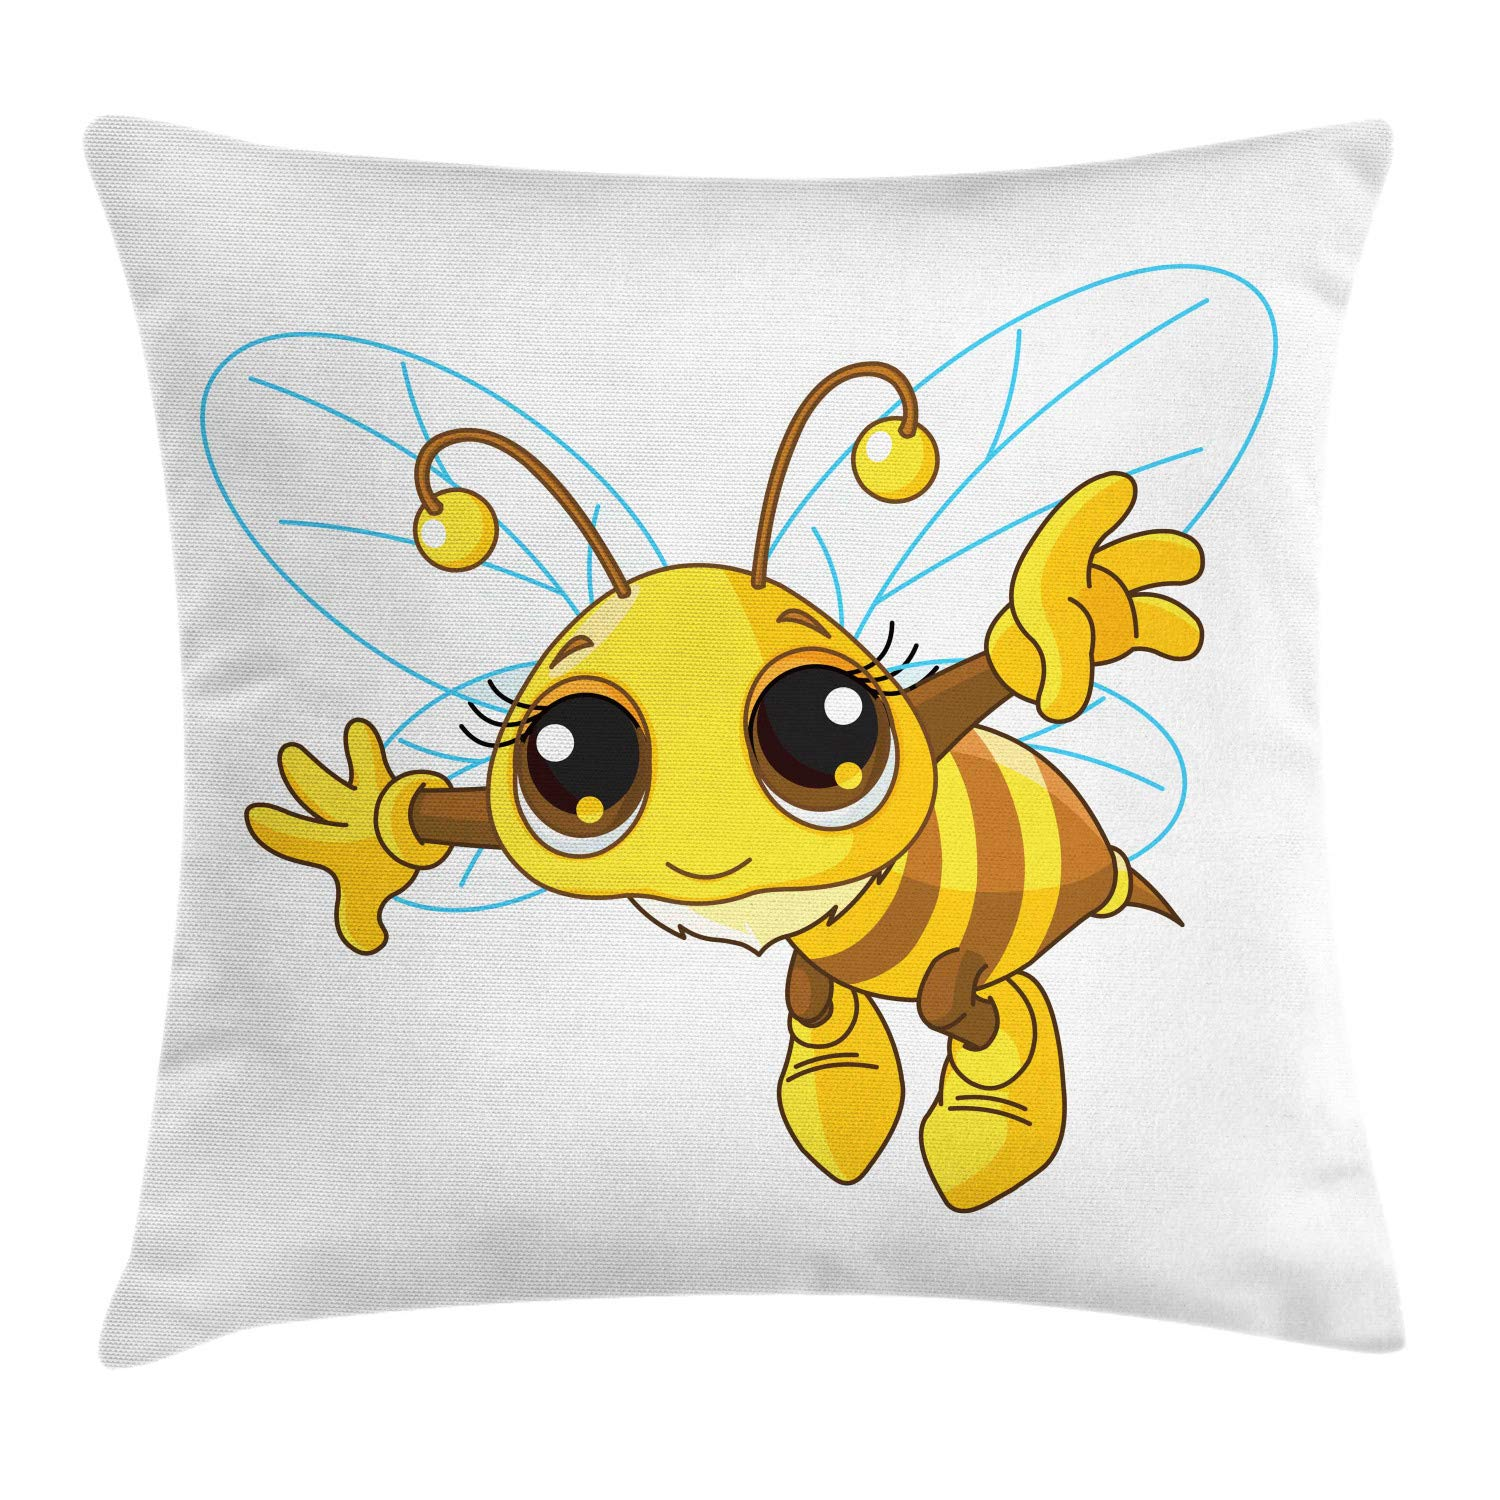 Lunarable Honey Bee Throw Pillow Cushion Cover, Insect with Eyes and Outline Wings Nursery Cartoon, Decorative Square Accent Pillow Case, 40'' X 40'', Mustard Ginger Black and Sky Blue by Lunarable